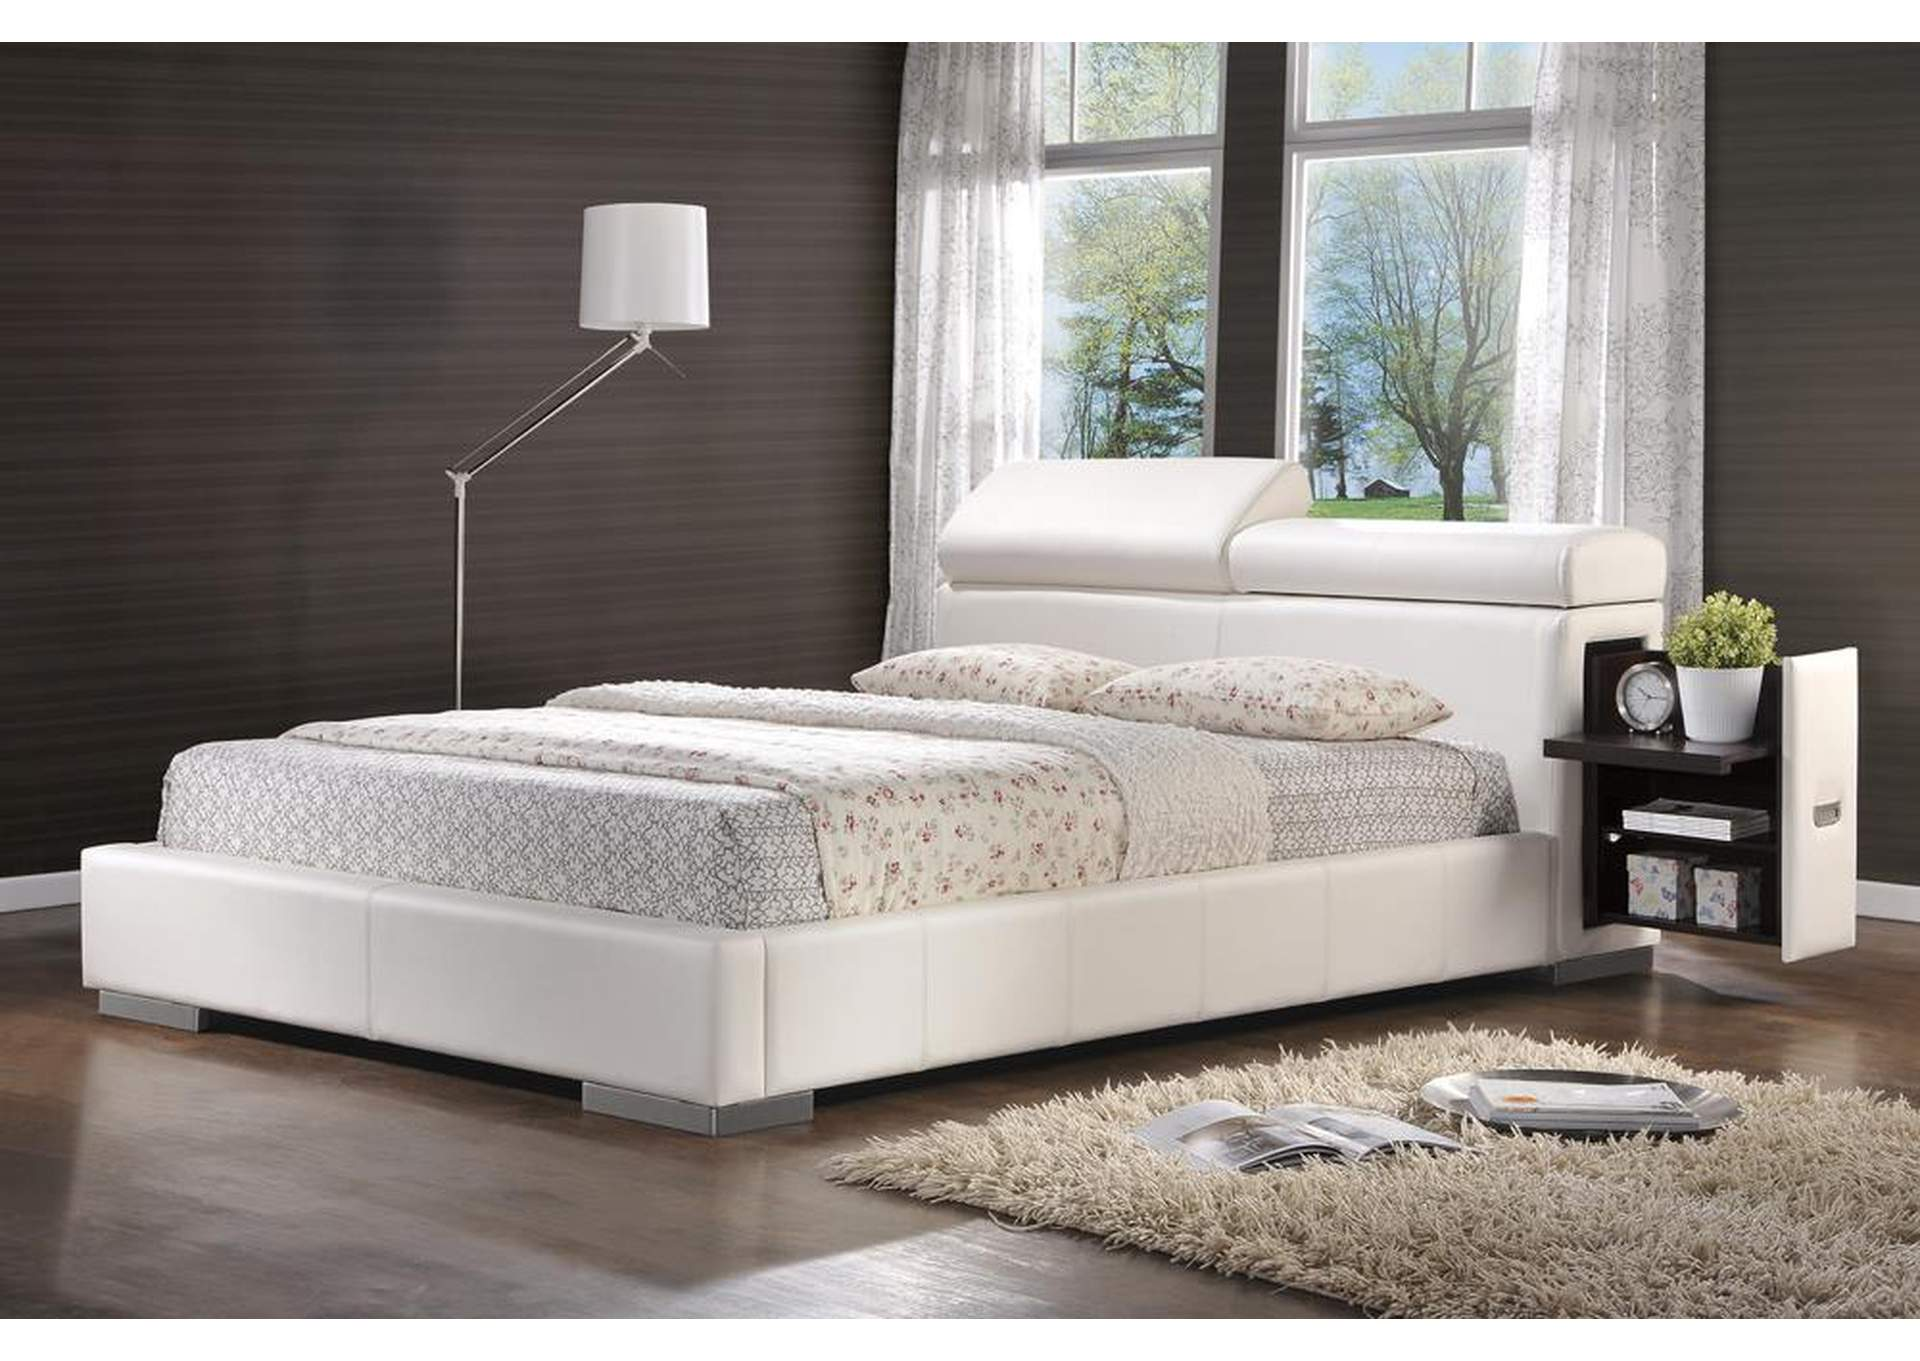 Maxine White Upholstered Queen Bed,Coaster Furniture